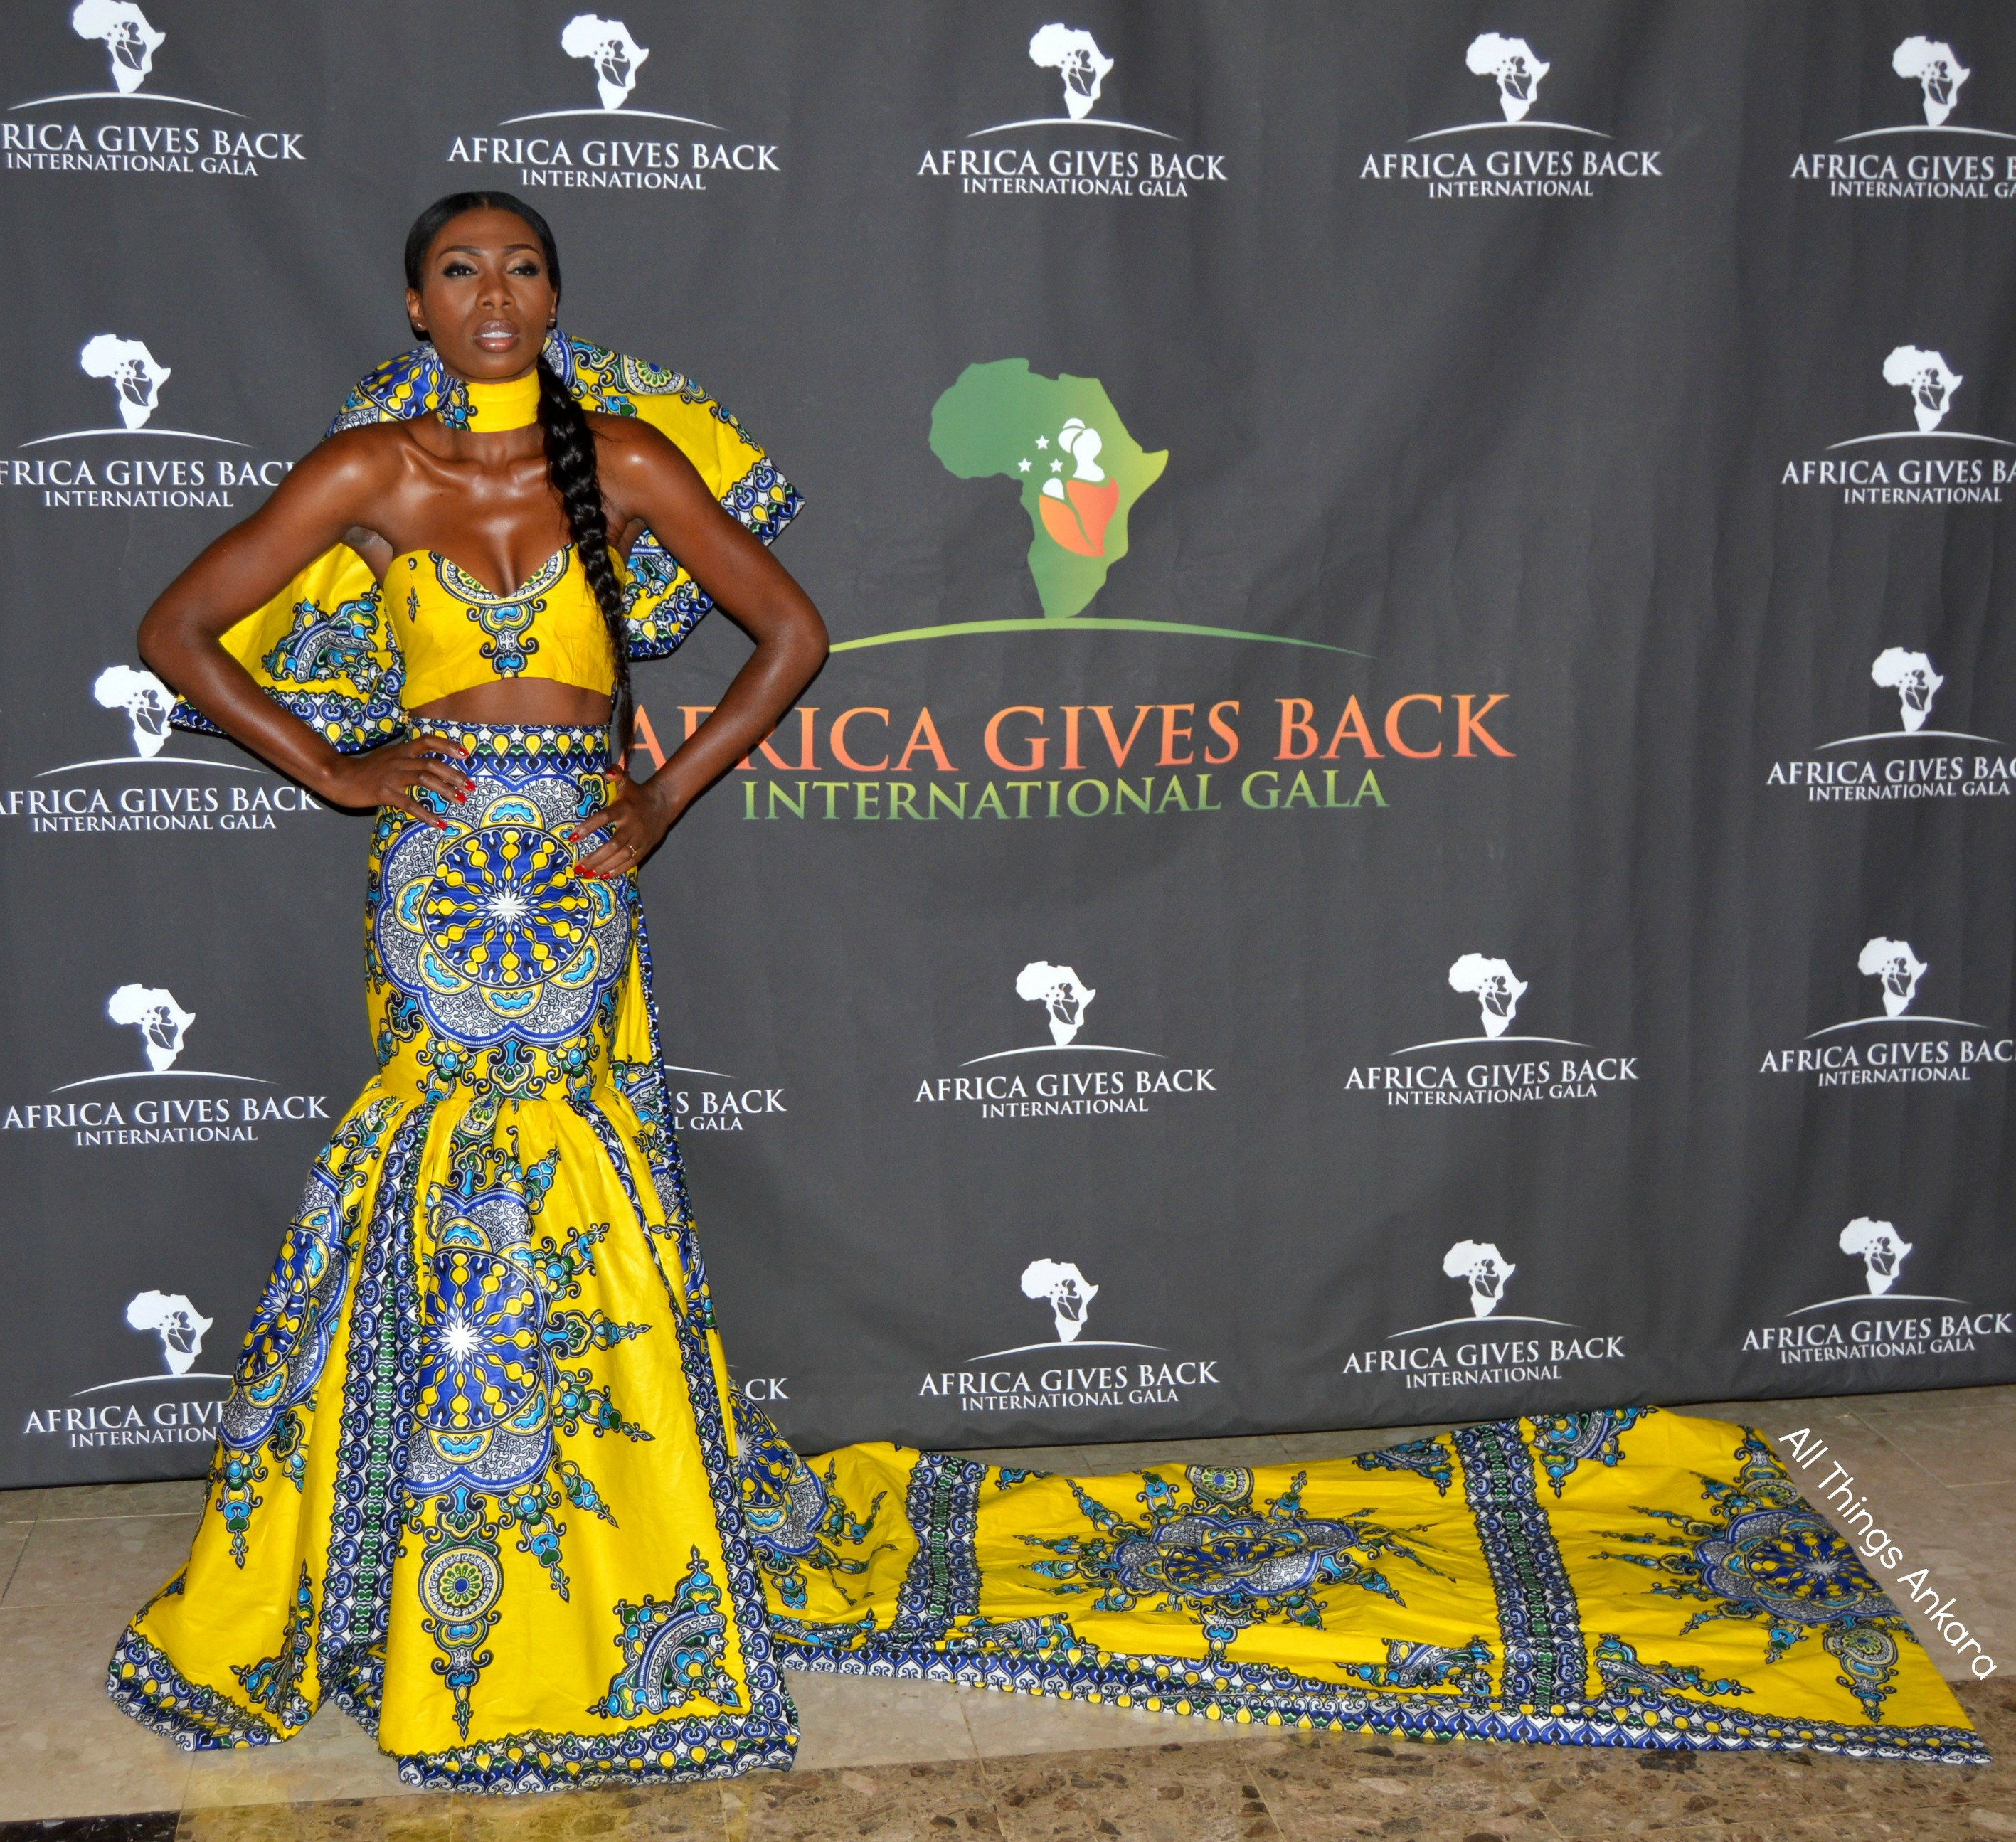 Gala-All Things Ankara's Best Dressed Women at Africa Gives Back International Gala 2016 16